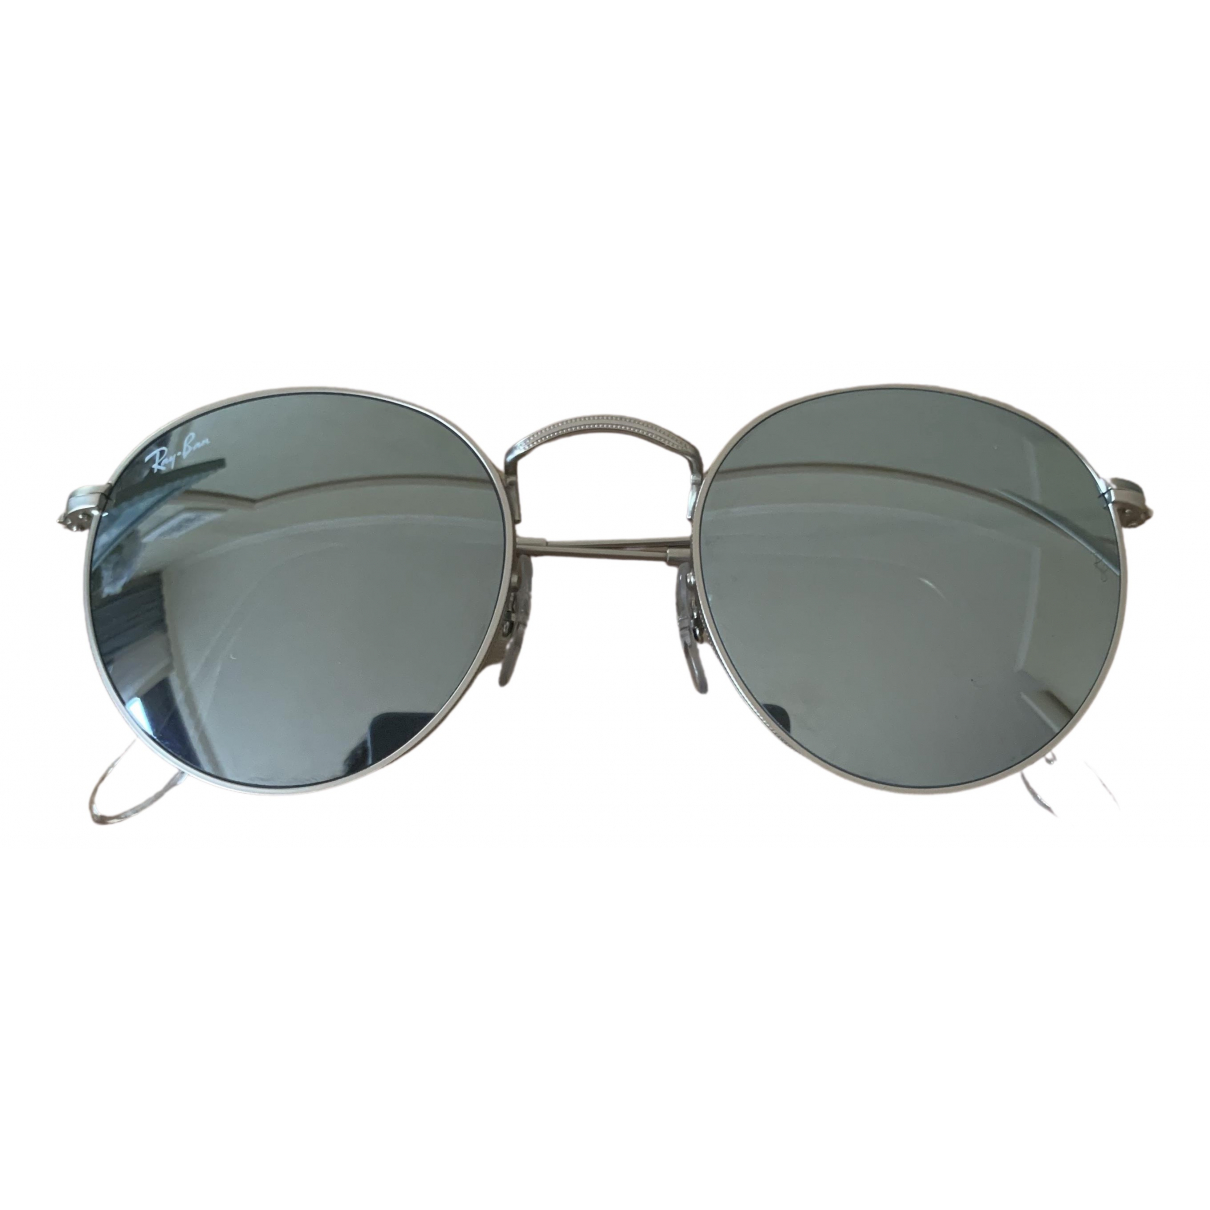 Ray-ban Round Silver Metal Sunglasses for Women N